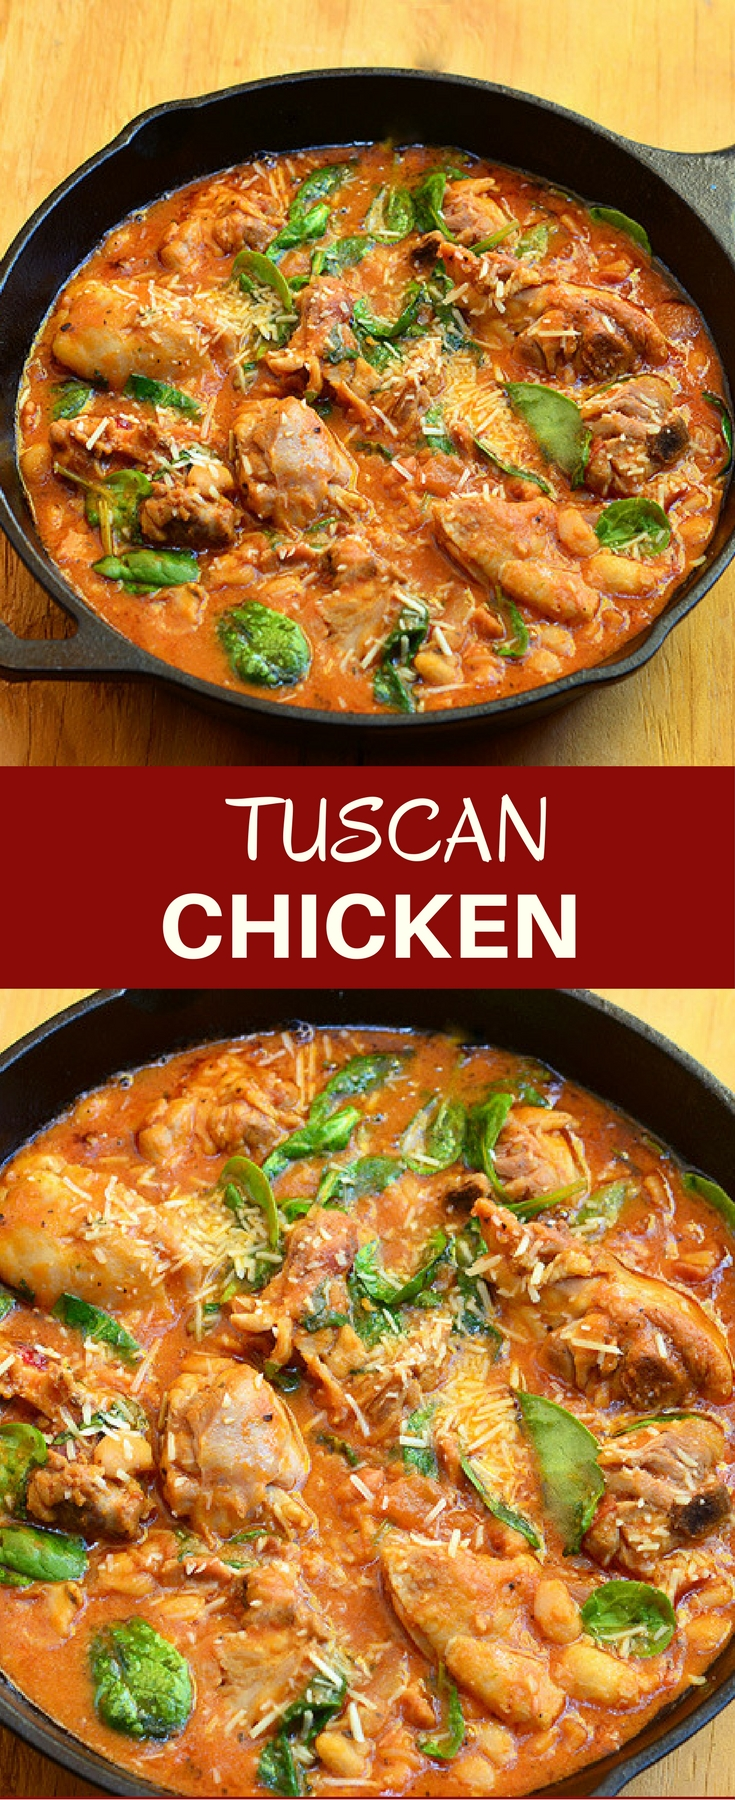 Tuscan Chicken with spinach, white beans, and an amazing tomato sauce. Hearty, delicious, and incredibly easy to make, it's a guaranteed to be a dinner favorite!